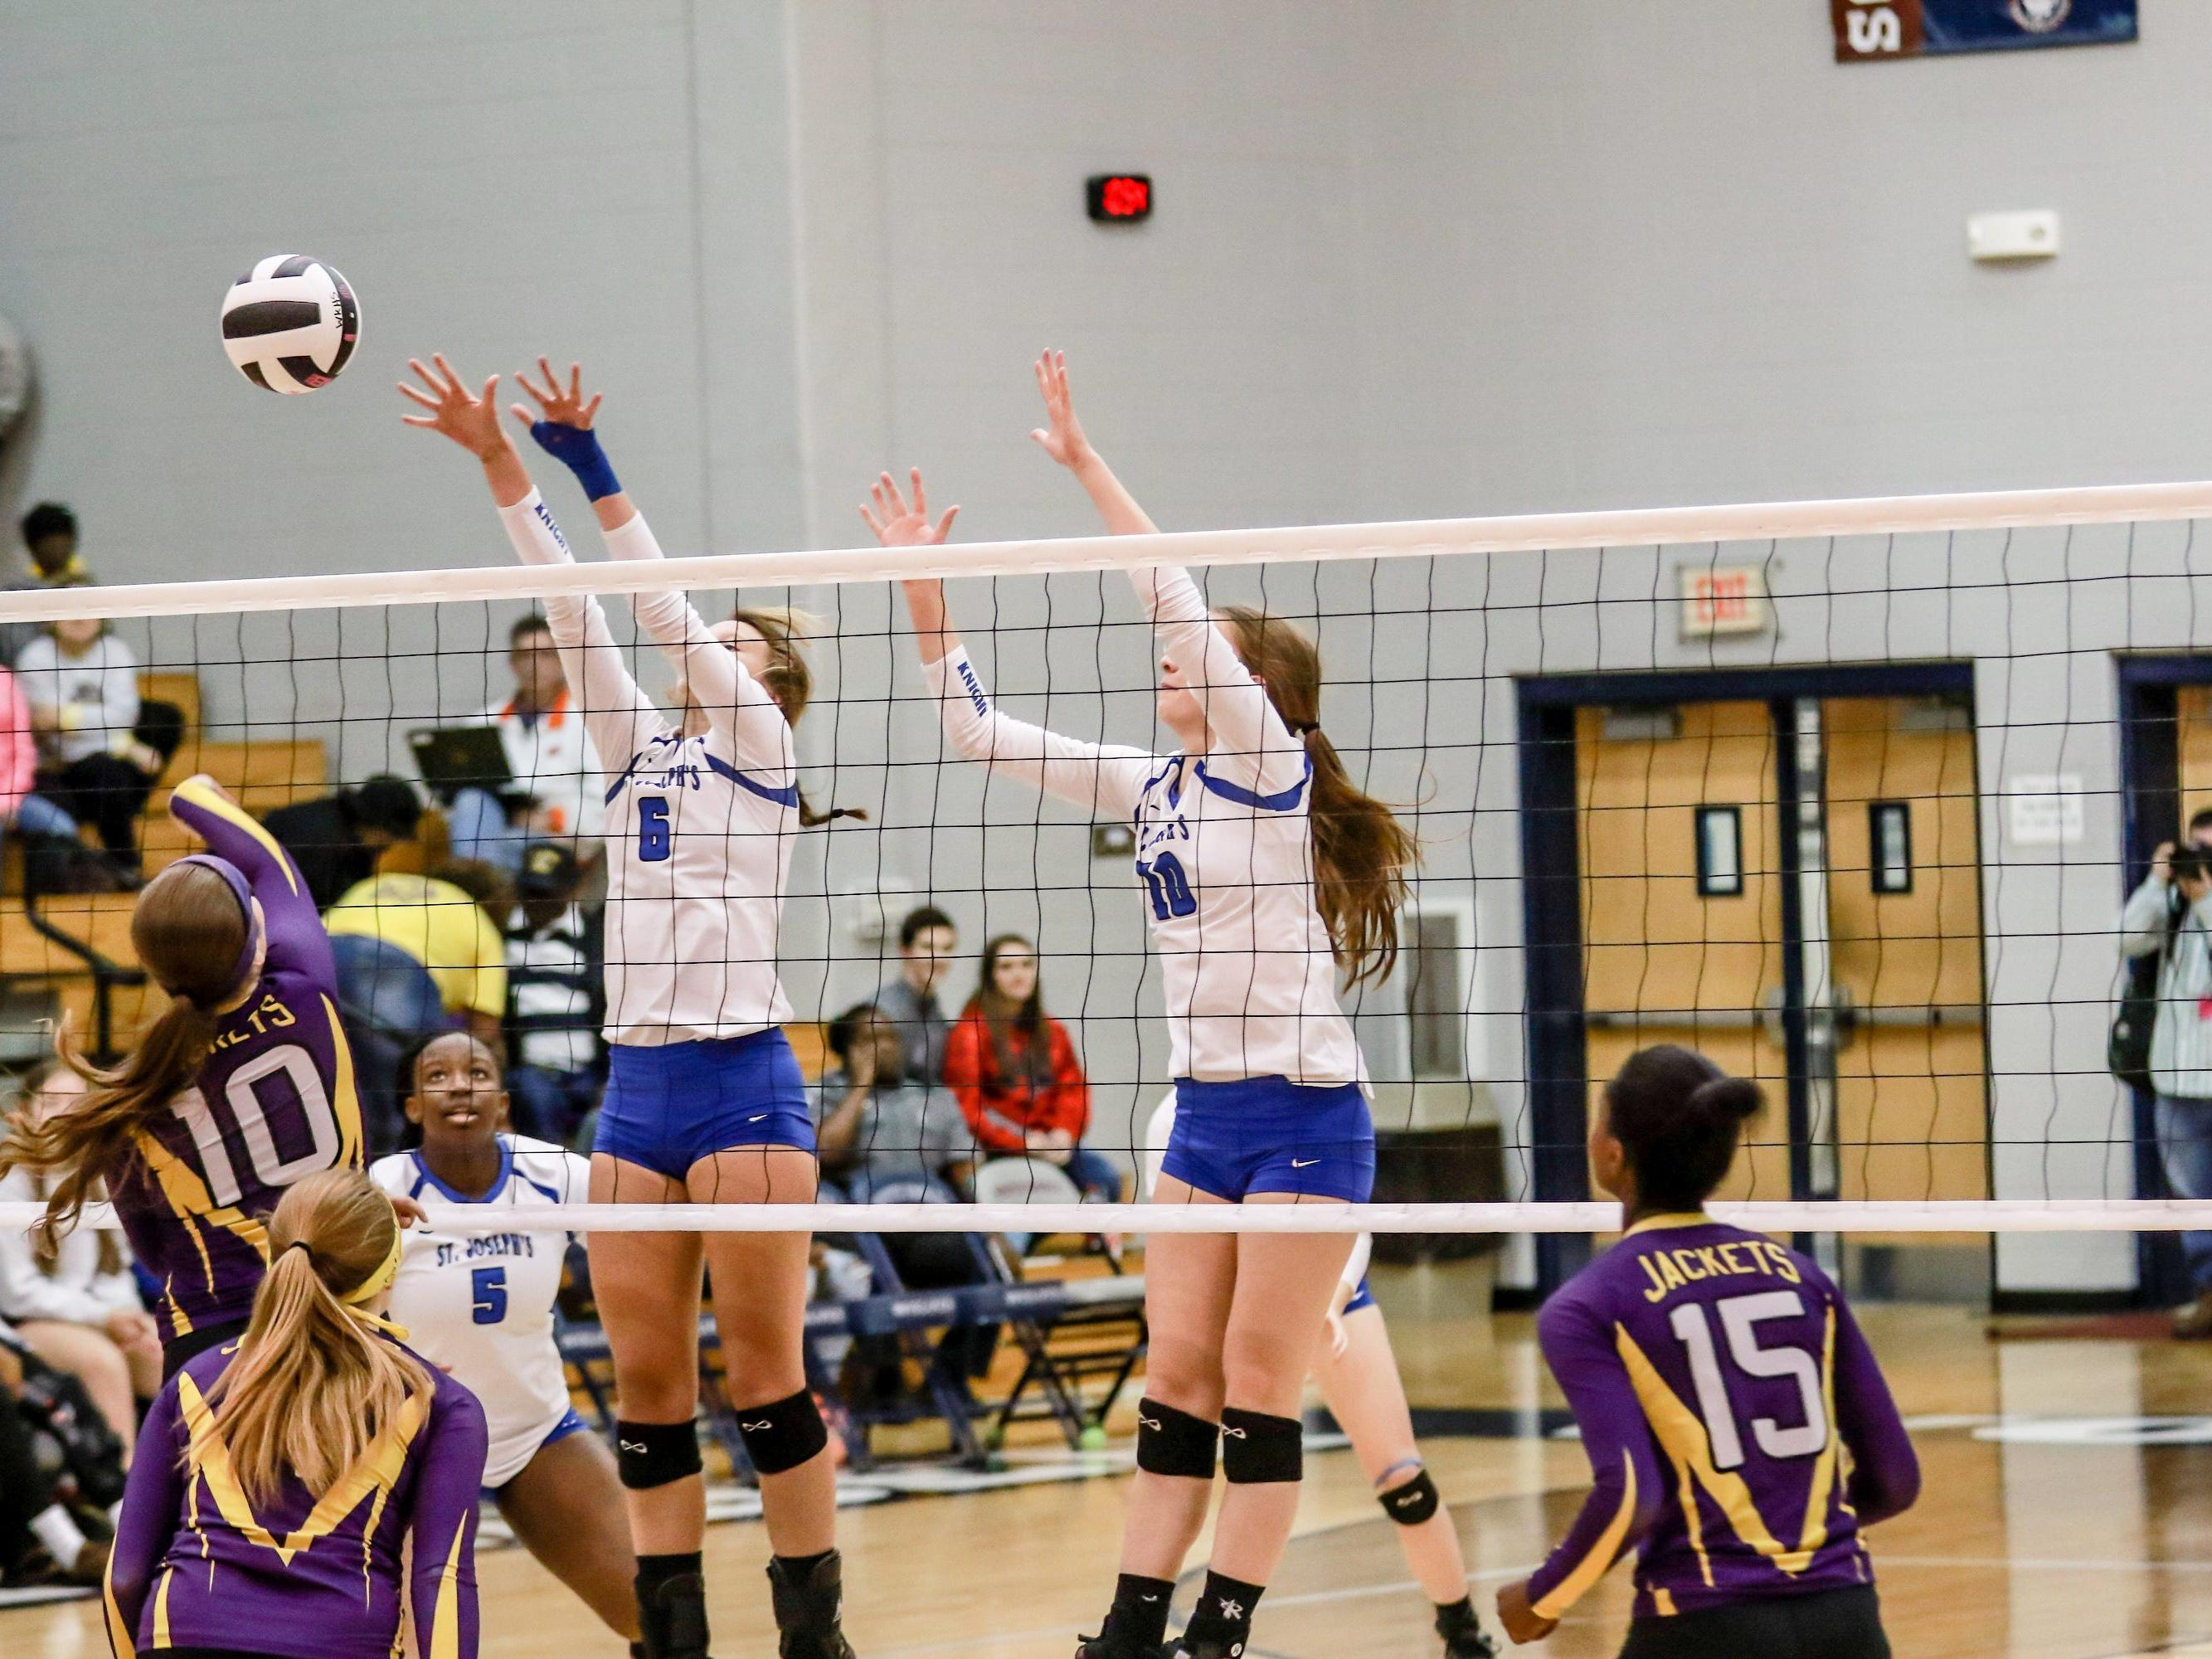 St Joseph's Knights defeated the Branchville Yellow Jackets to win their 5th 1A Volleyball State Championship Saturday , Nov.14, 2015 at White Knoll High.